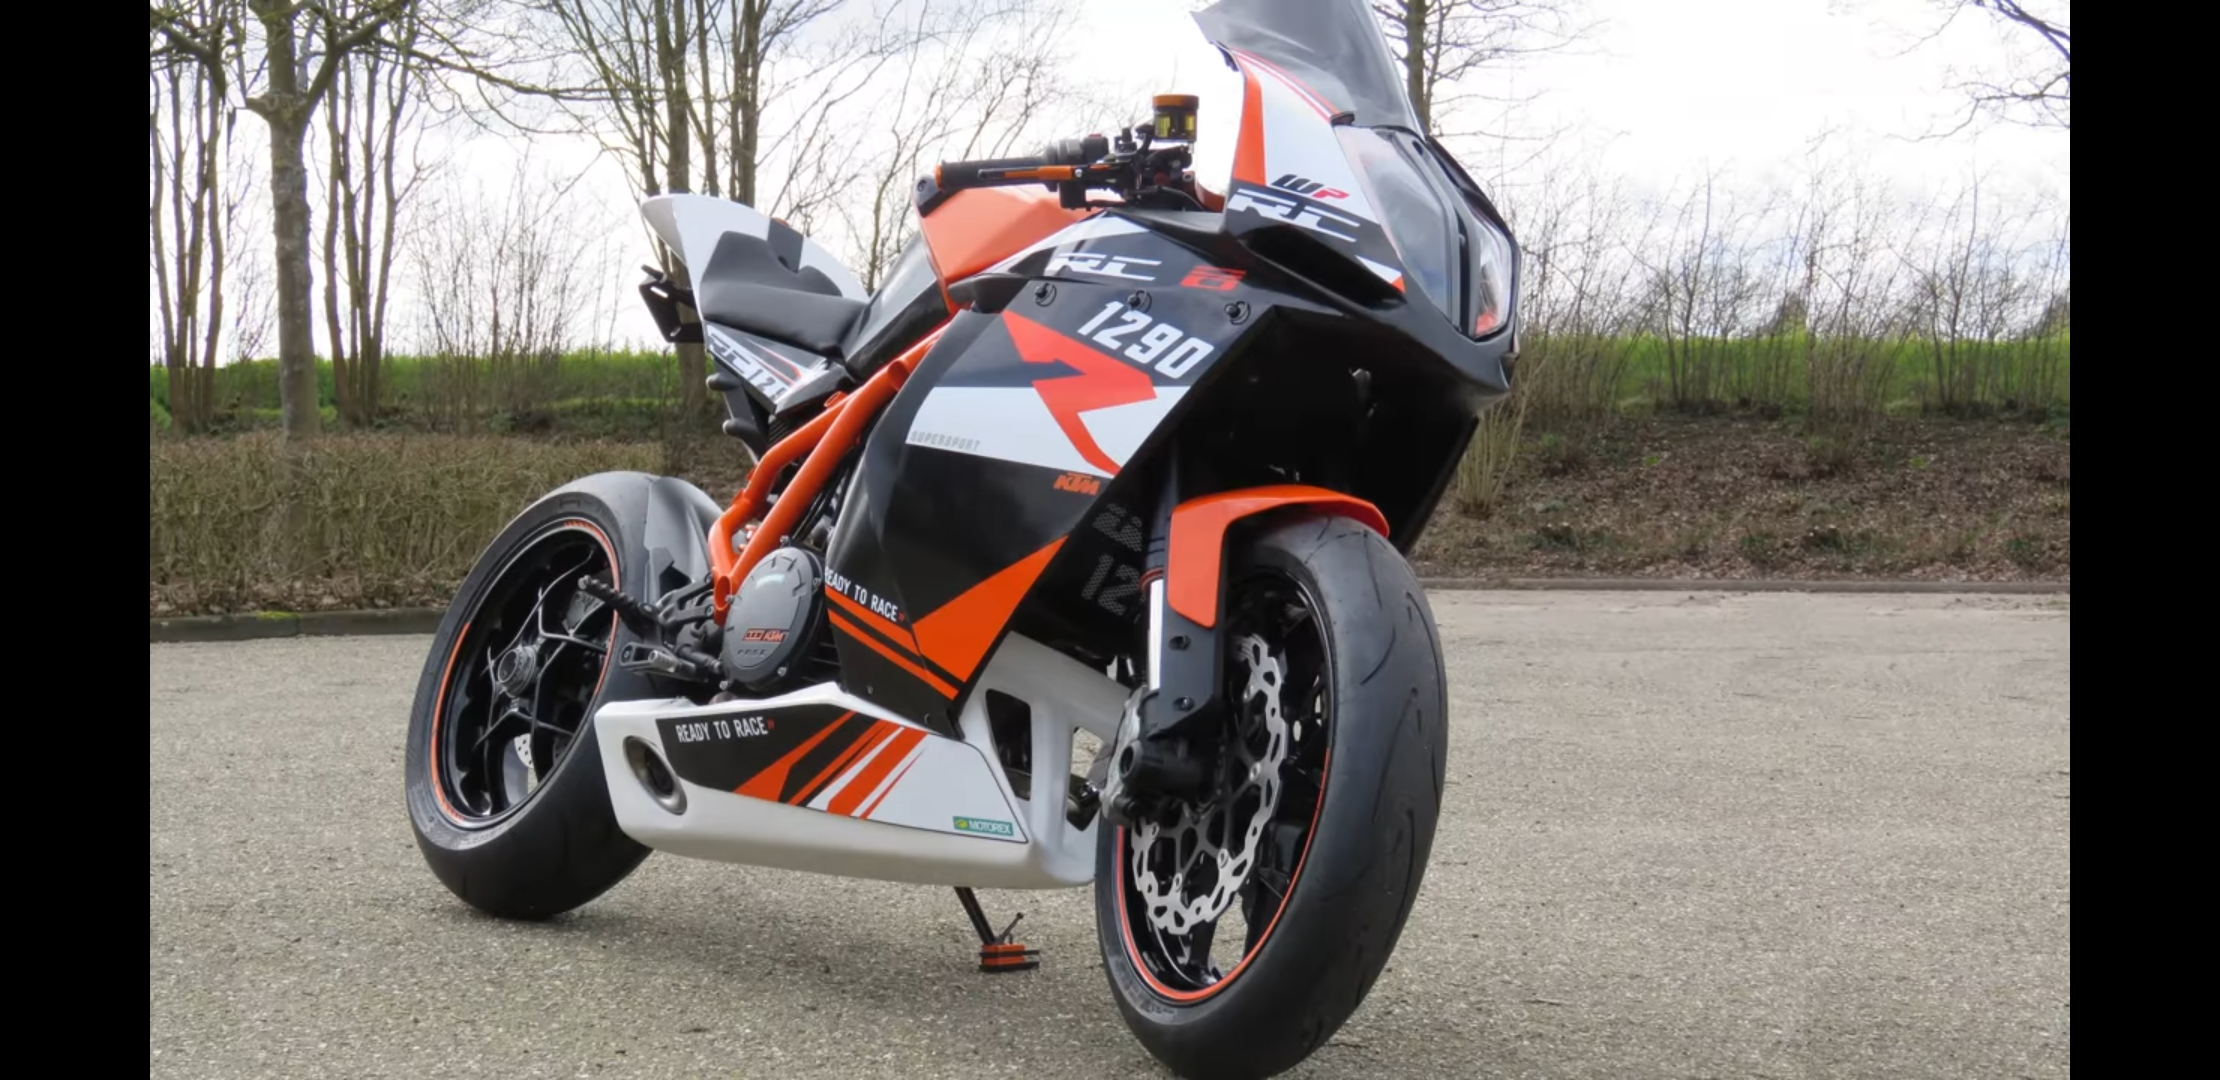 Ktm Rc 1290 A Custom Made 177hp Superbike Drivemag Riders